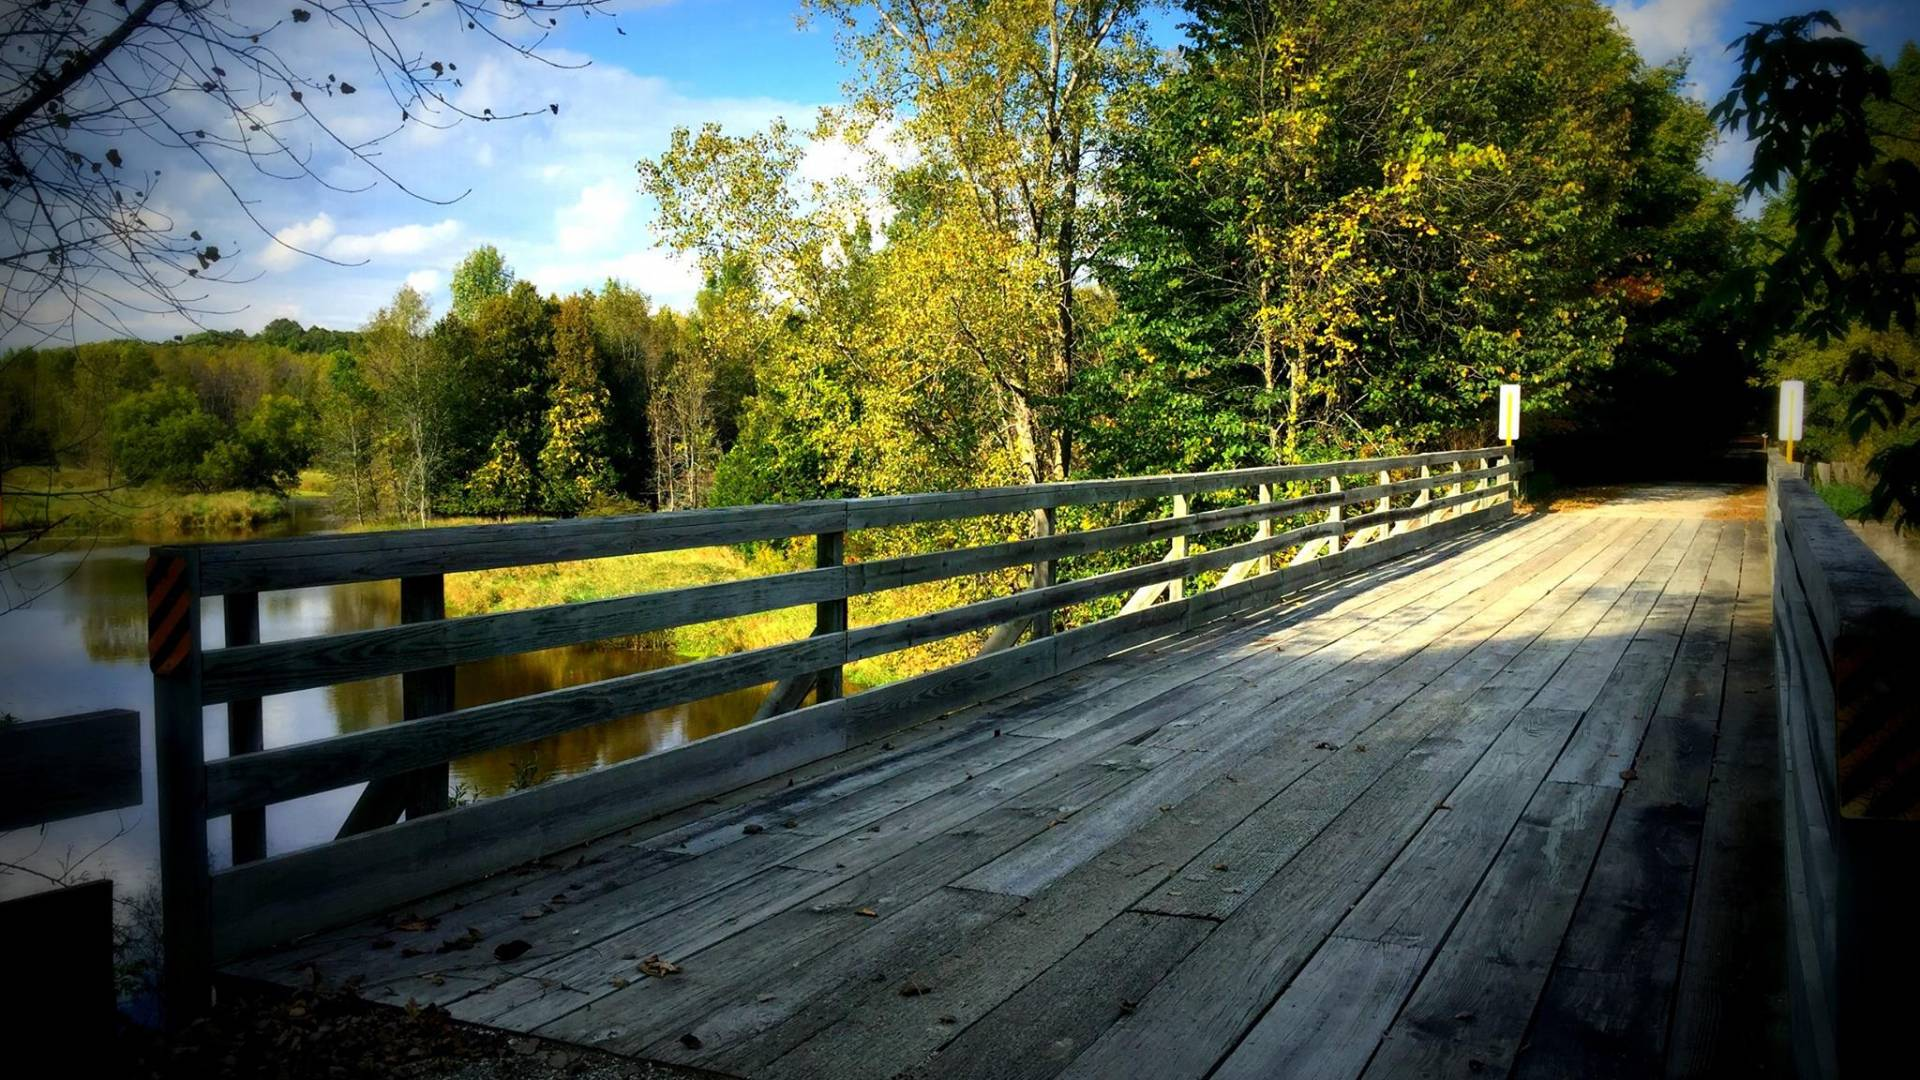 Greater Green Bay offers some beautiful trails to get outside, get moving, and enjoy nature!